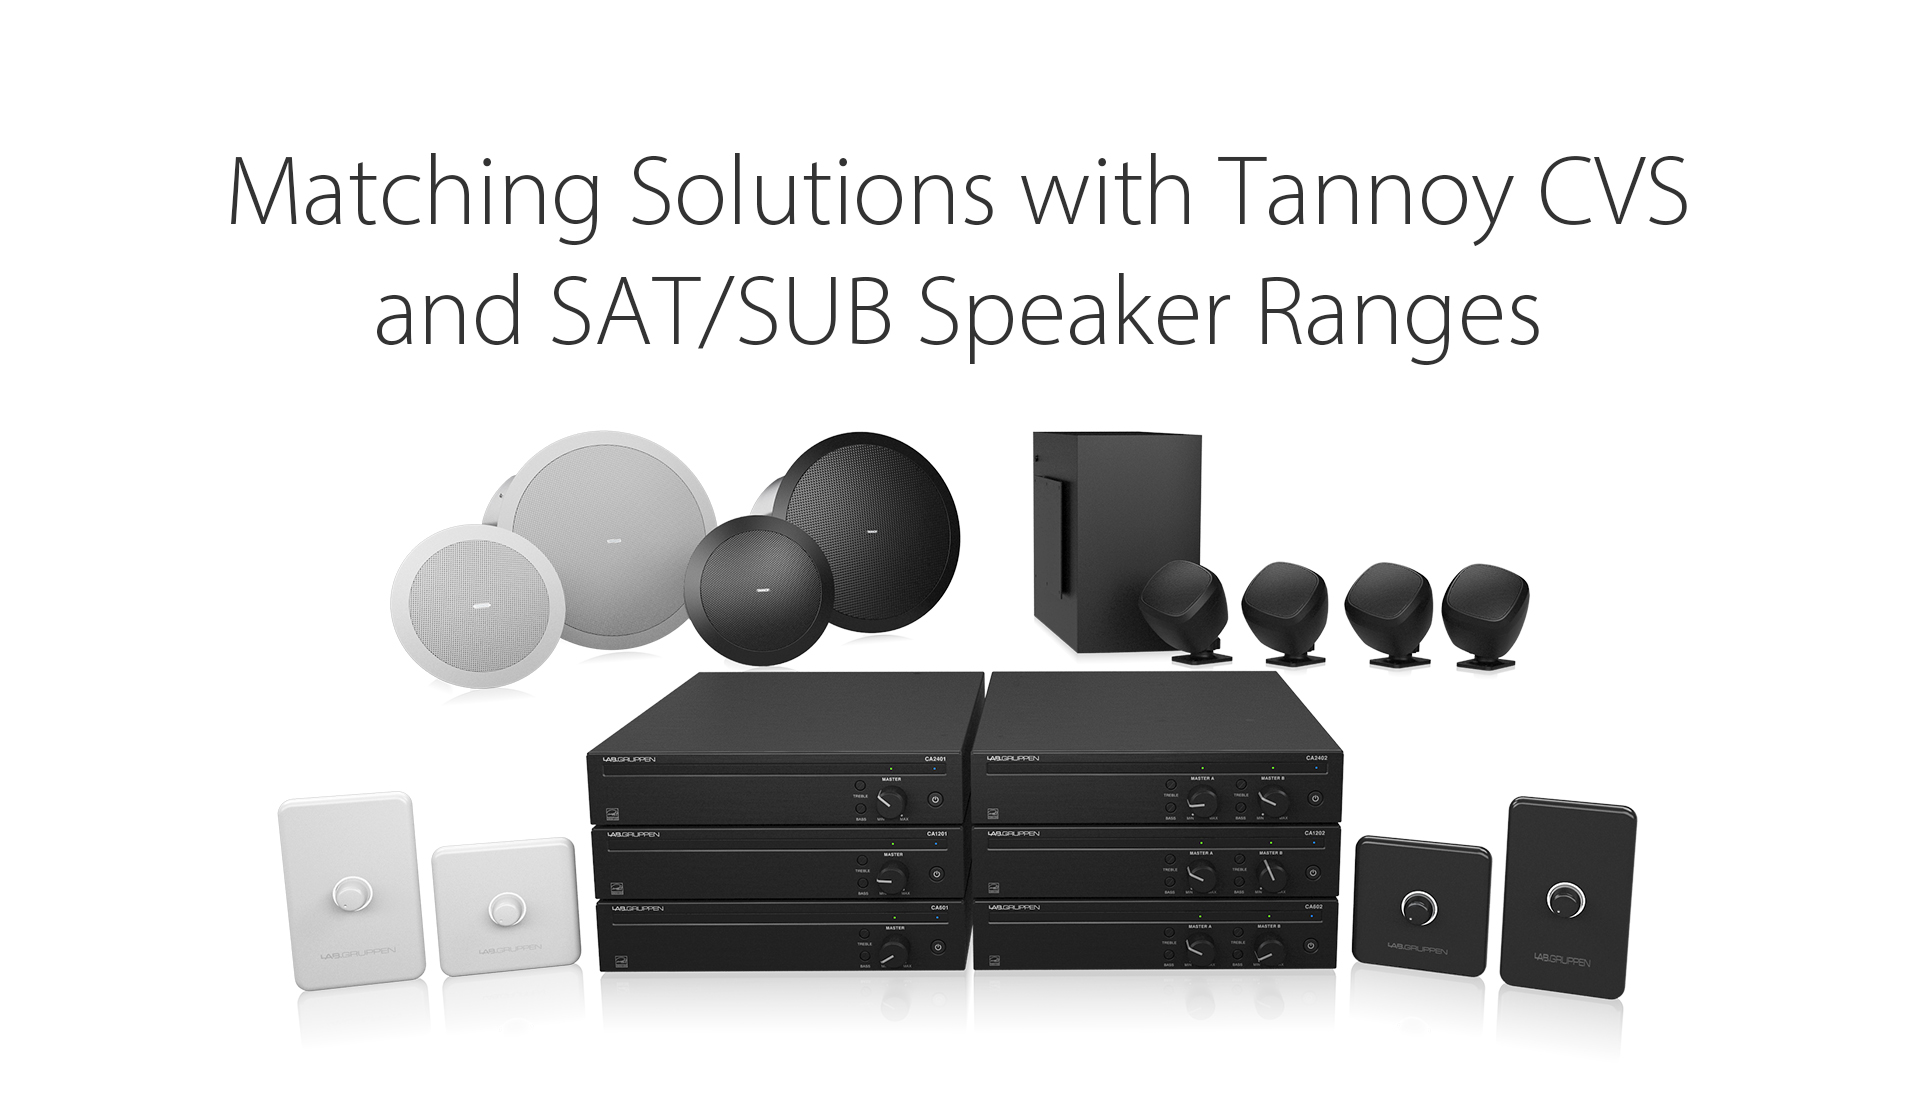 Matching Solutions with Tannoy CVS and SAT/SUB Speaker Ranges